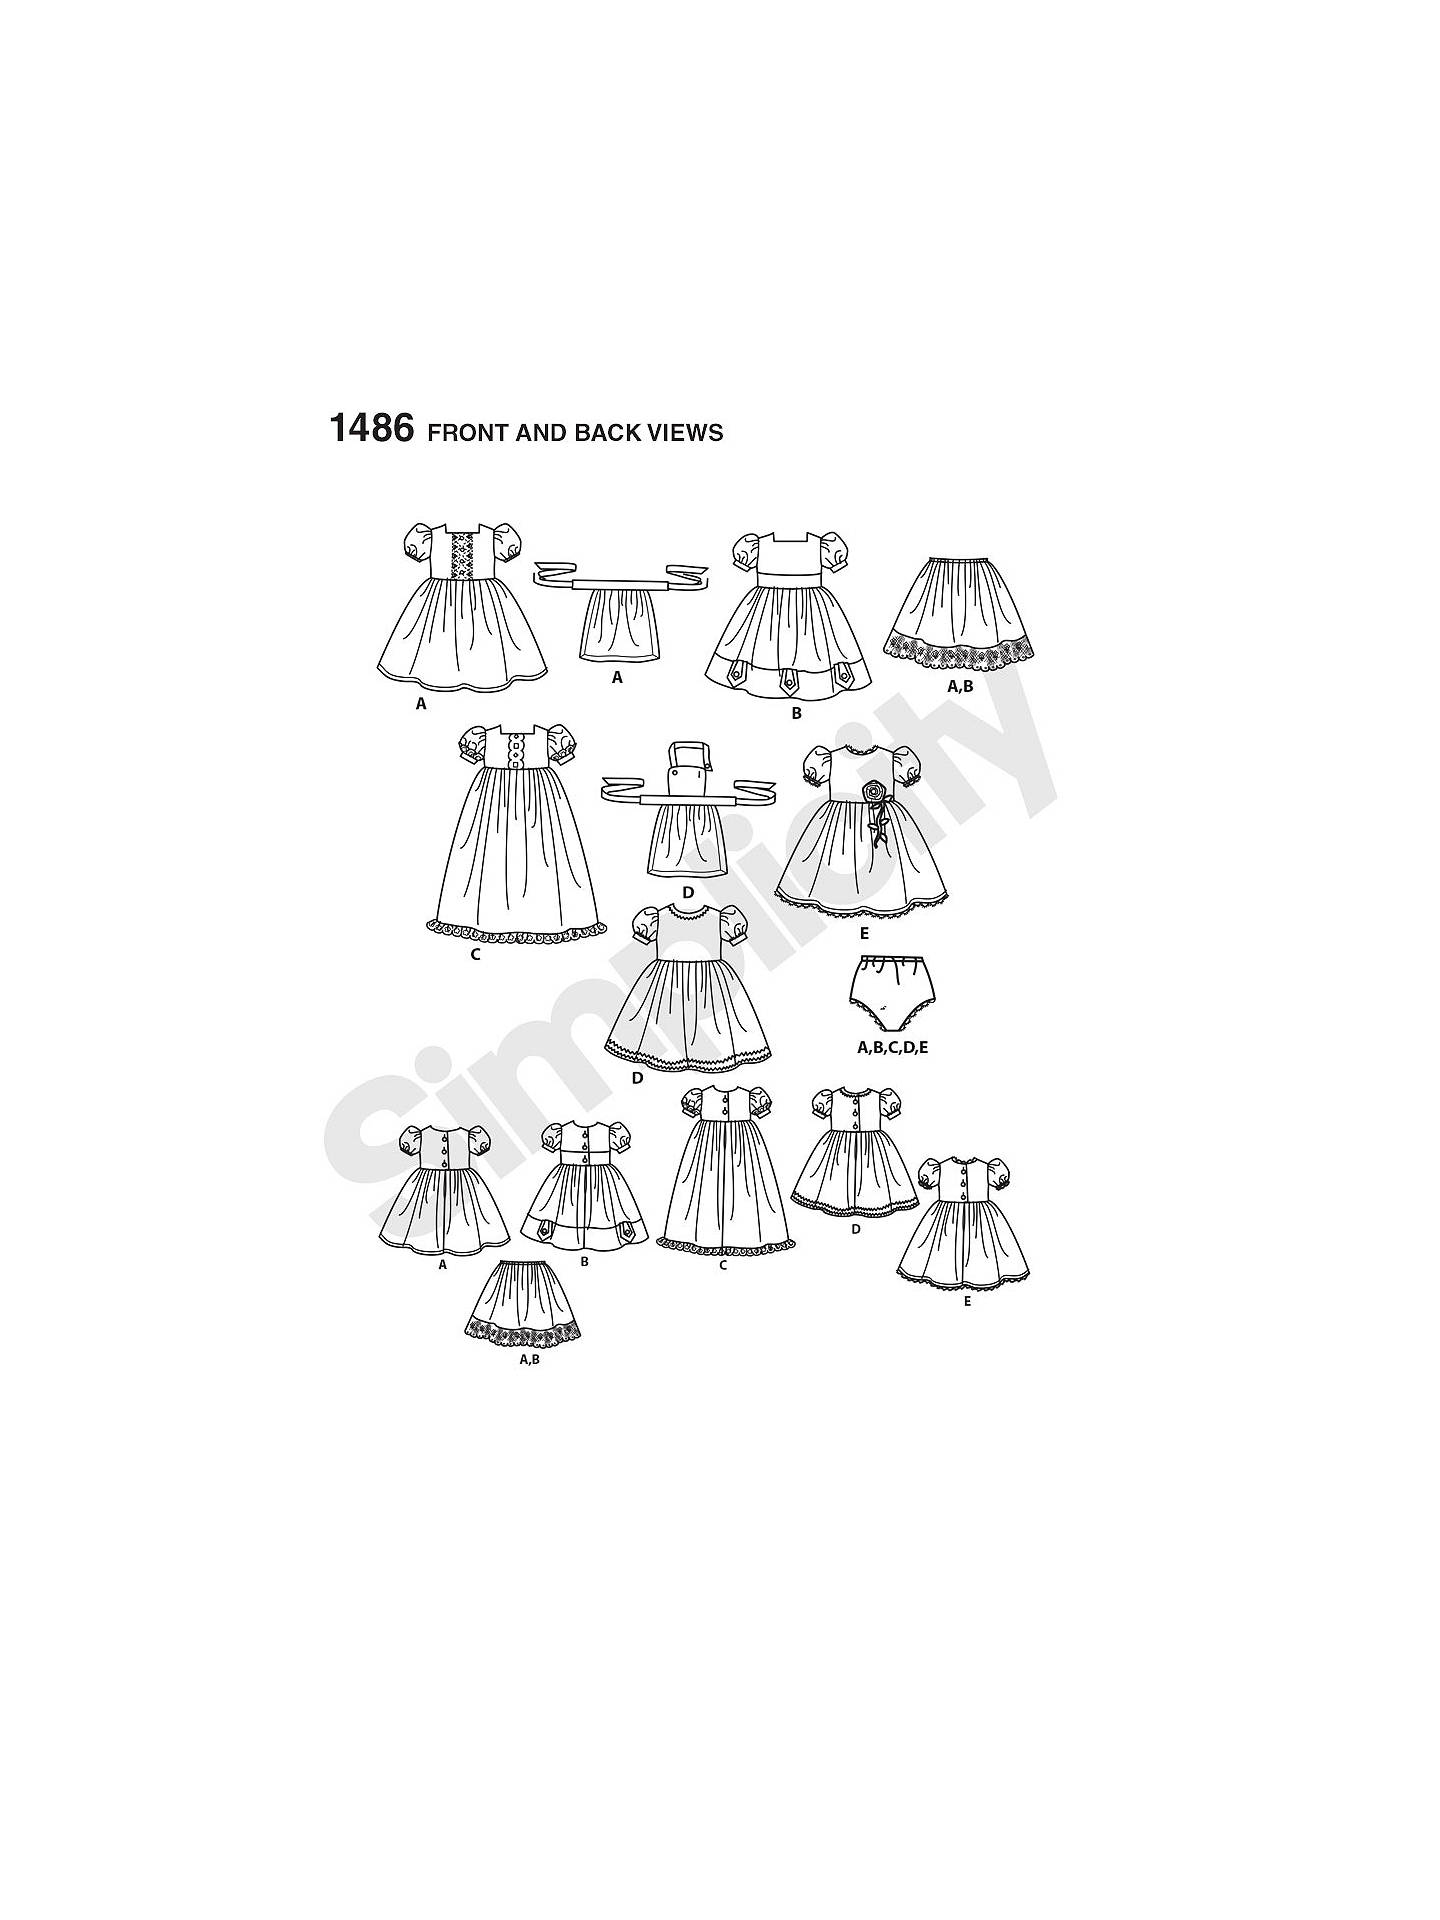 Simplicity Craft Doll Dresses Sewing Pattern, 1486 at John